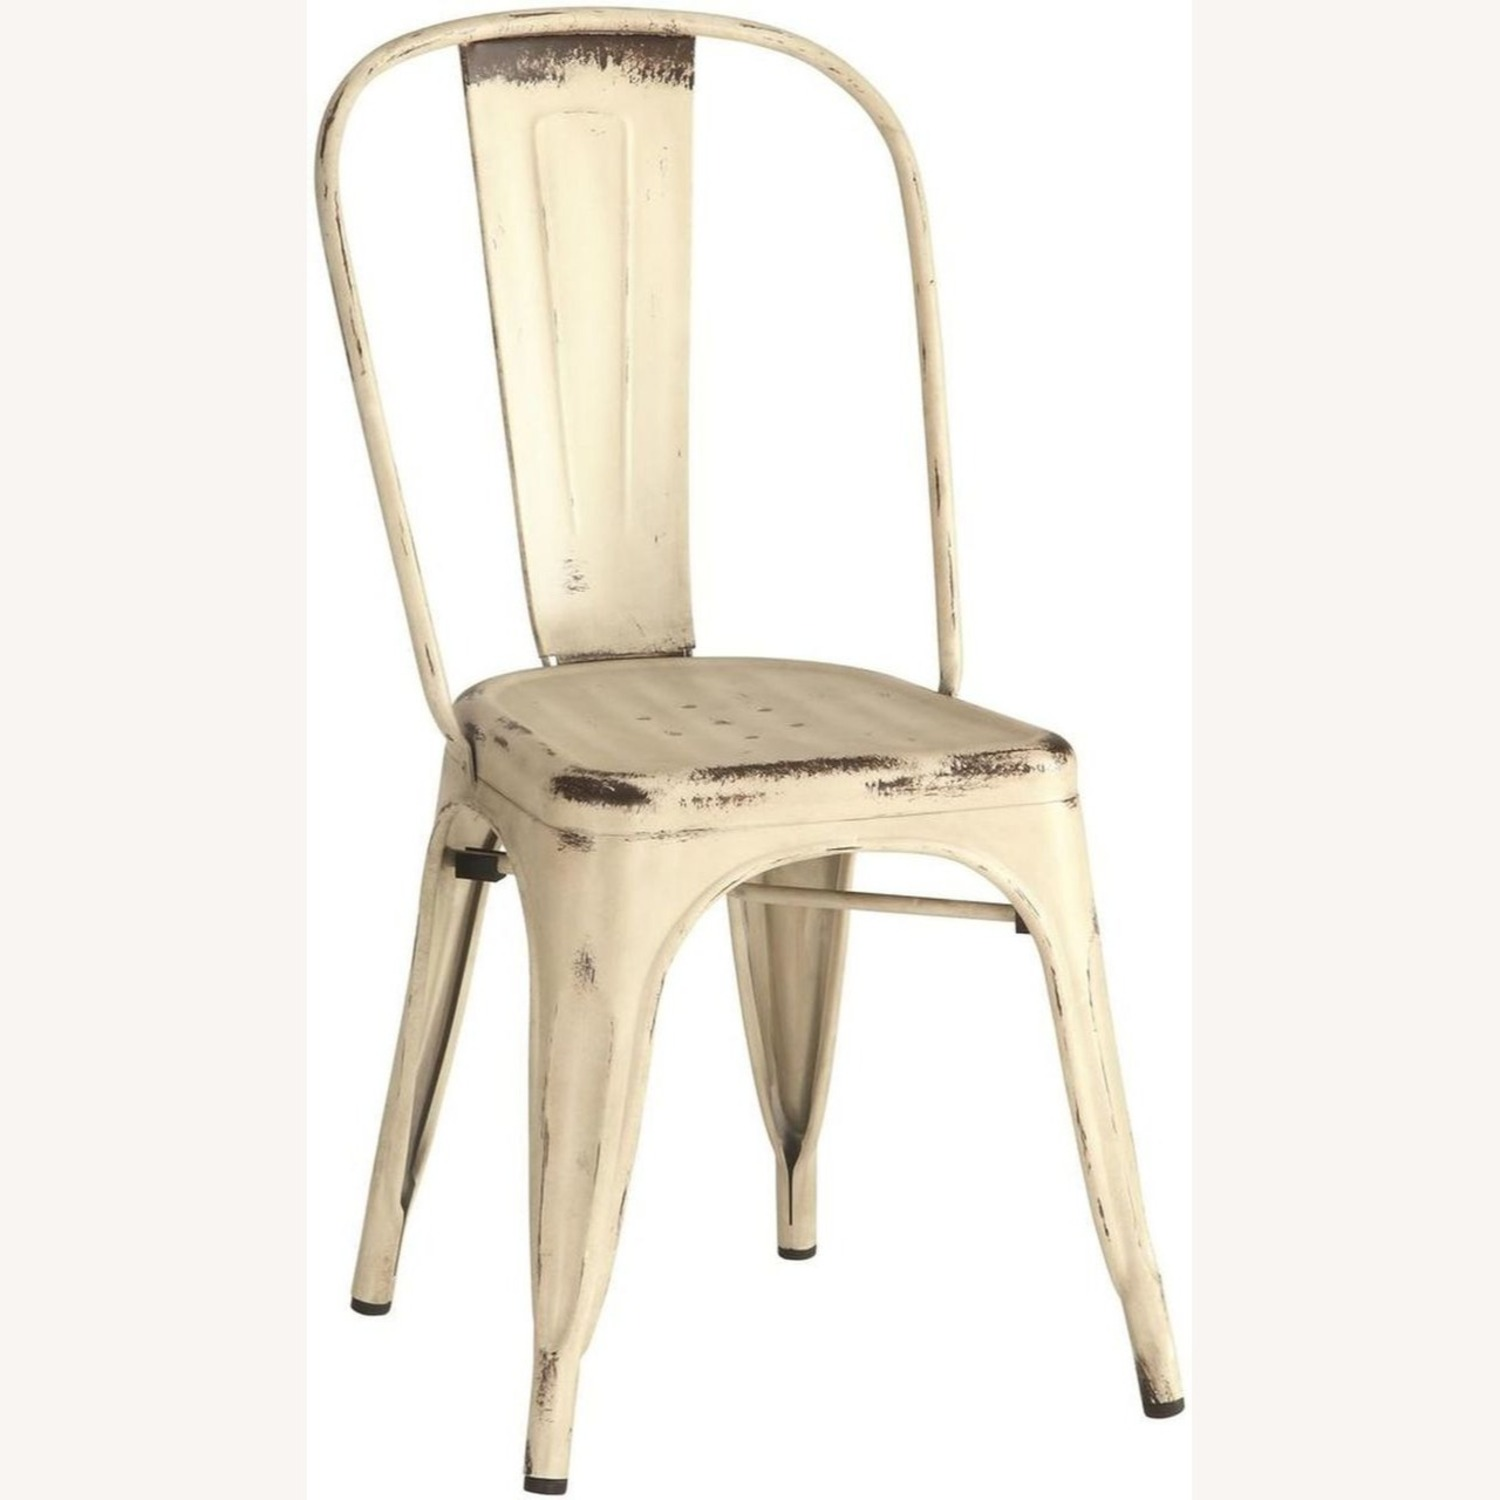 Modern Industrial Dining Chair In White Metal - image-0